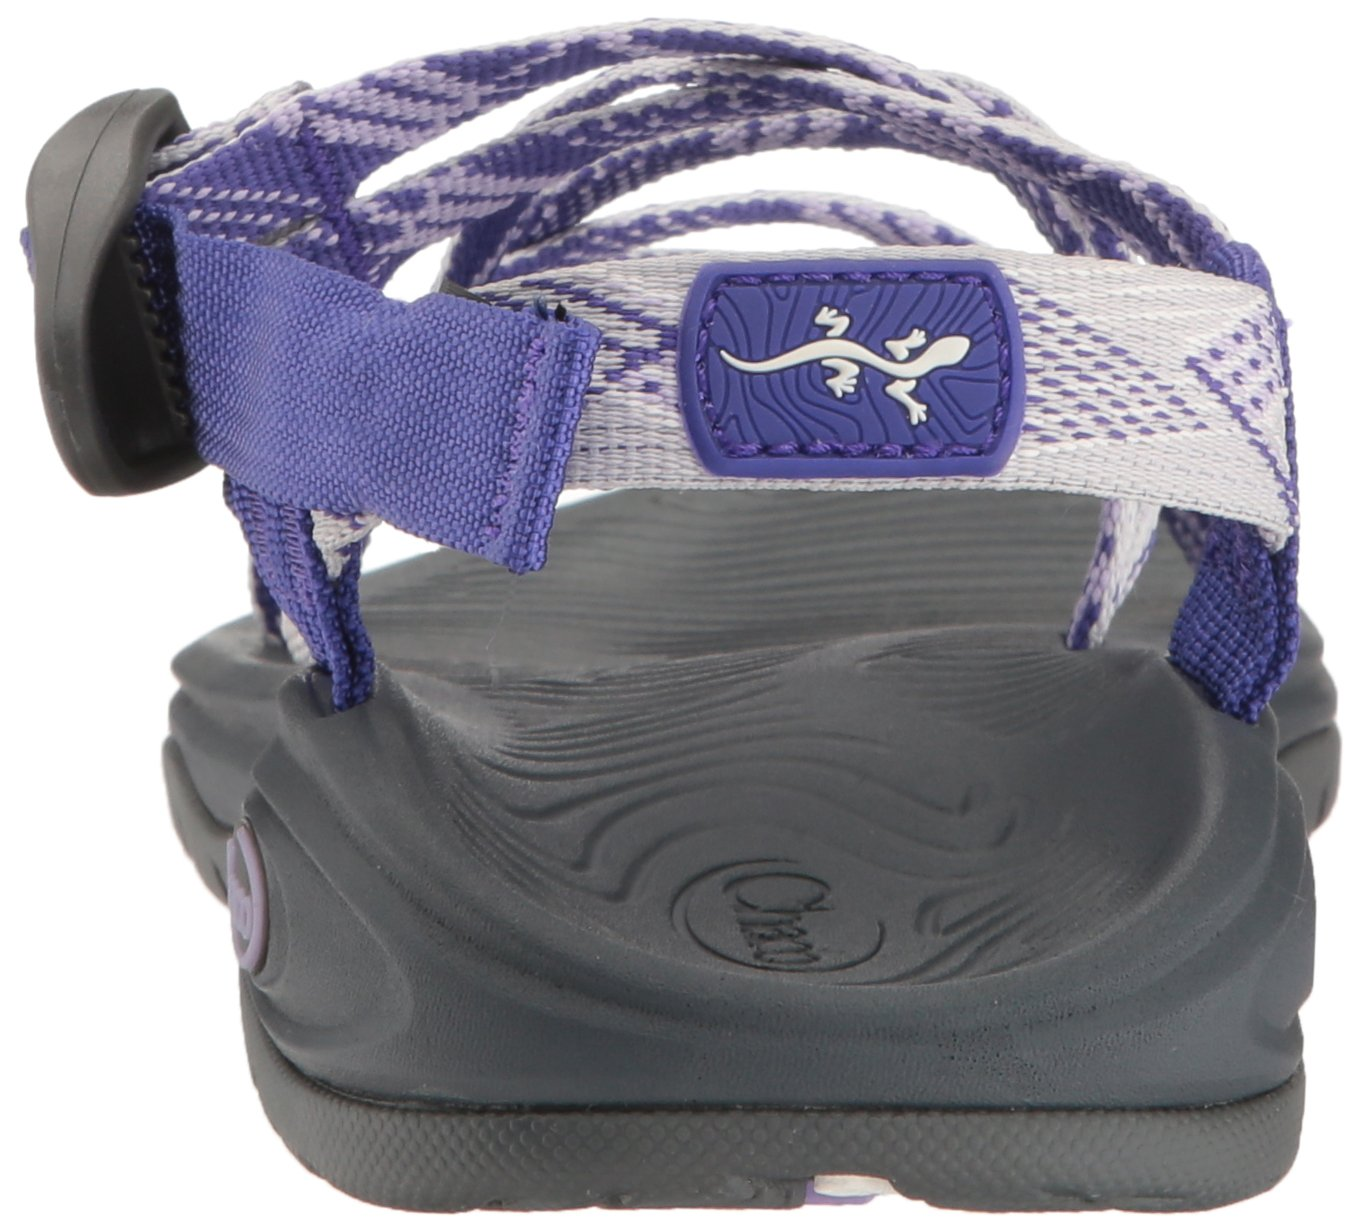 Chaco Women's Zvolv X Athletic Sandal, Lavender Liberty, 6 M US by Chaco (Image #2)